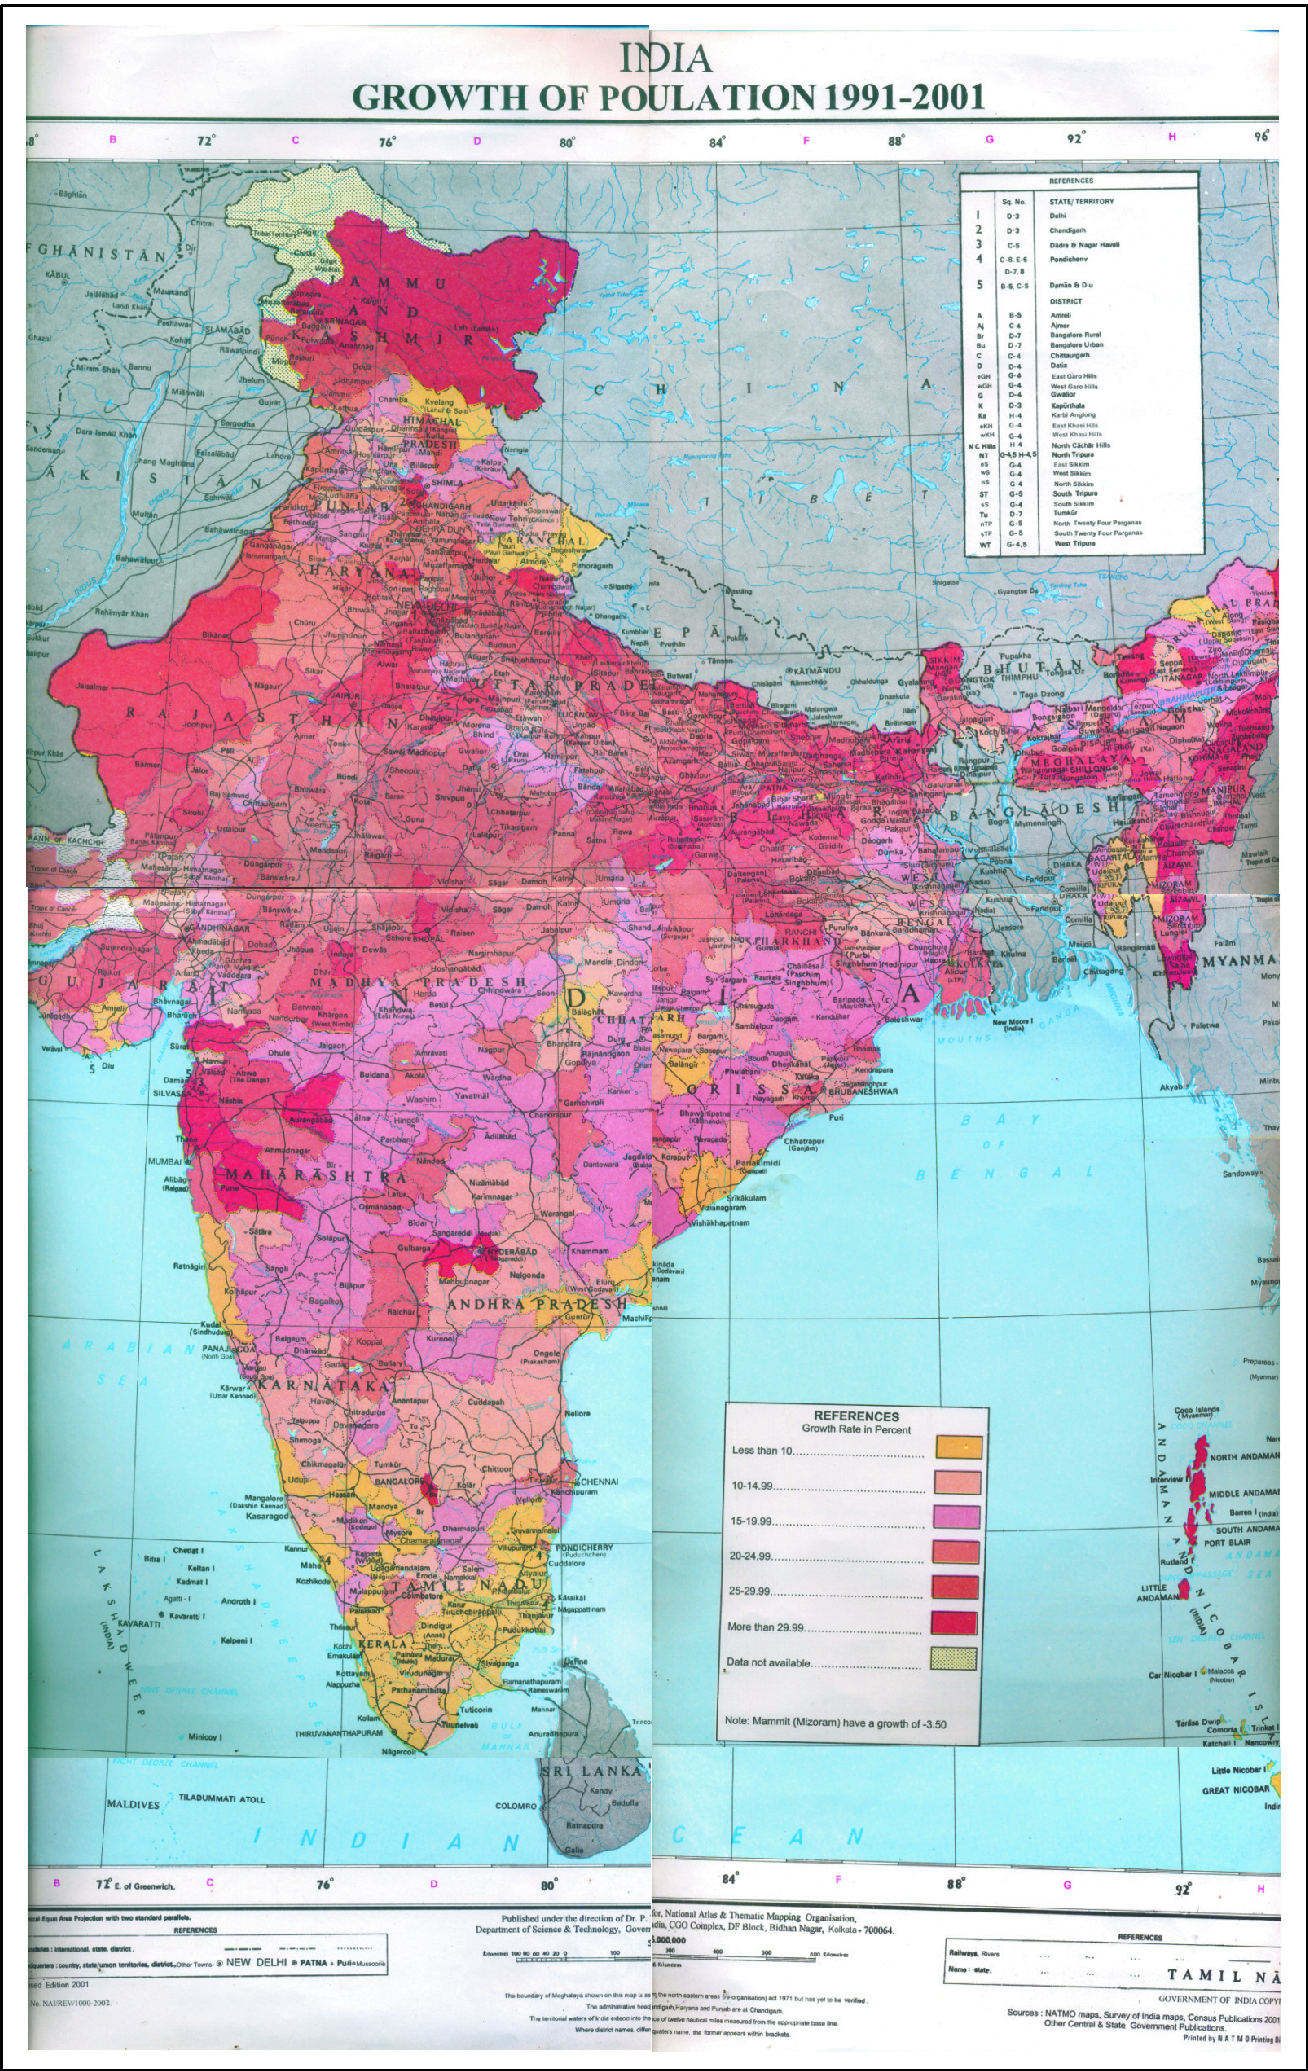 Aspects of the Quality of Life in India and Its Macro Region